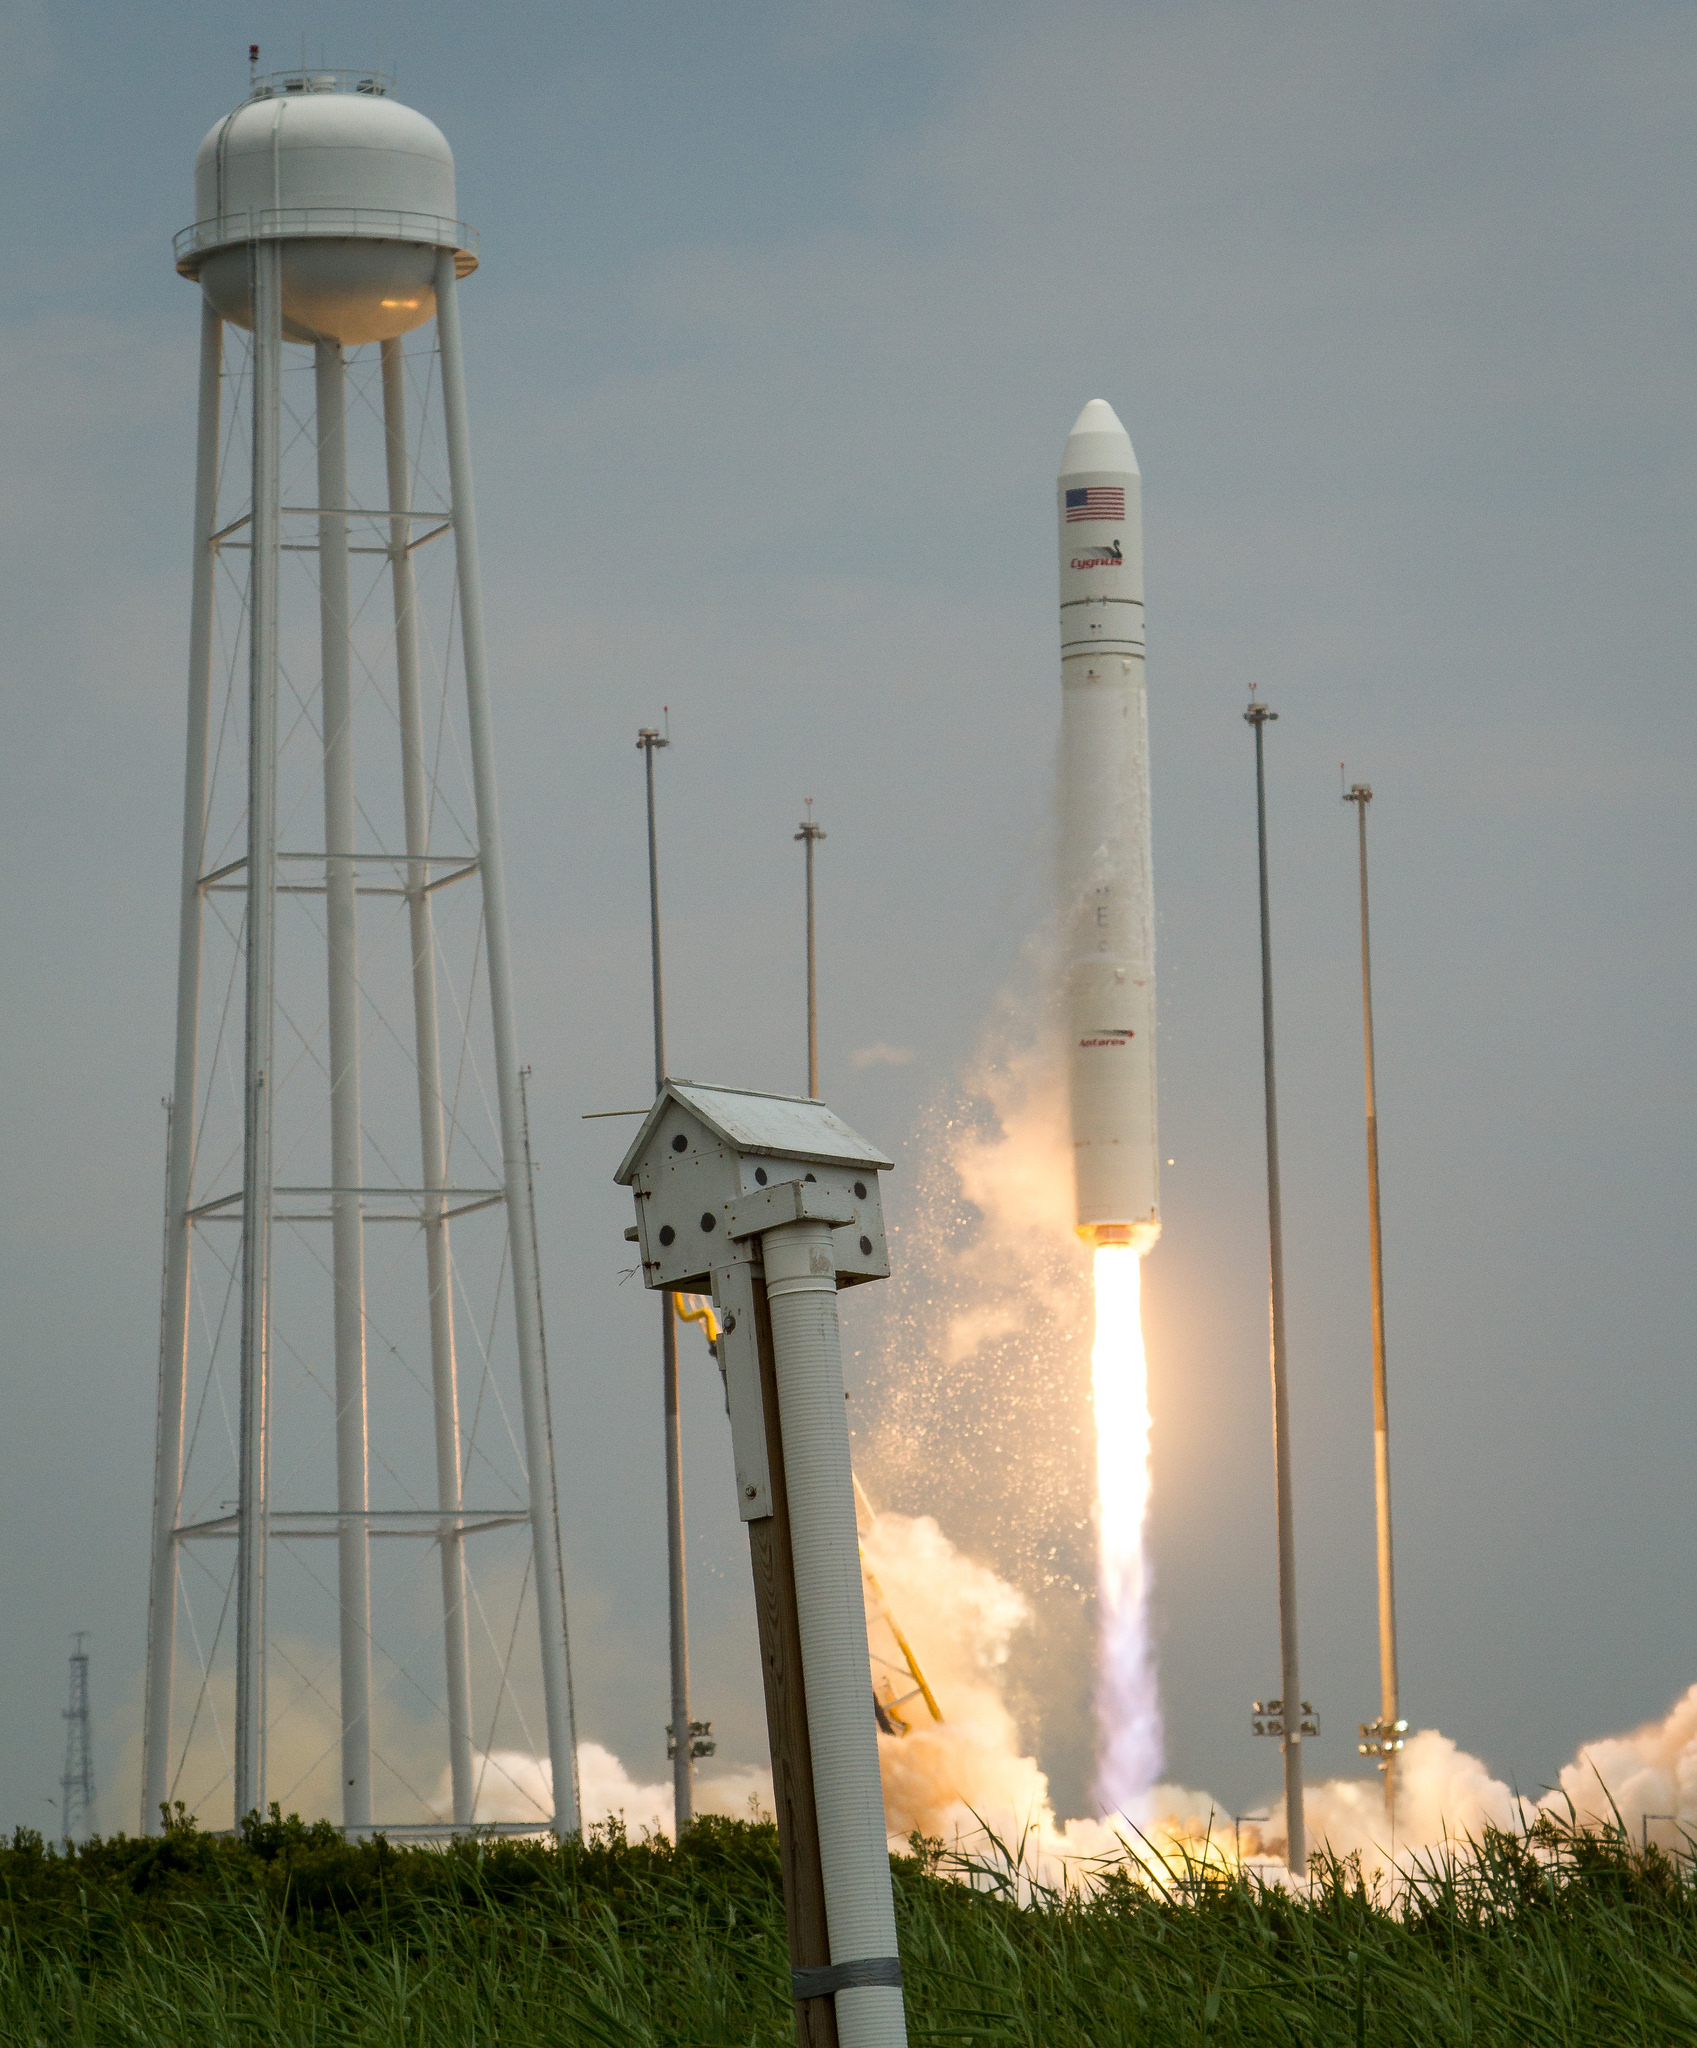 Orbital-2 Mission Antares Rocket Launch